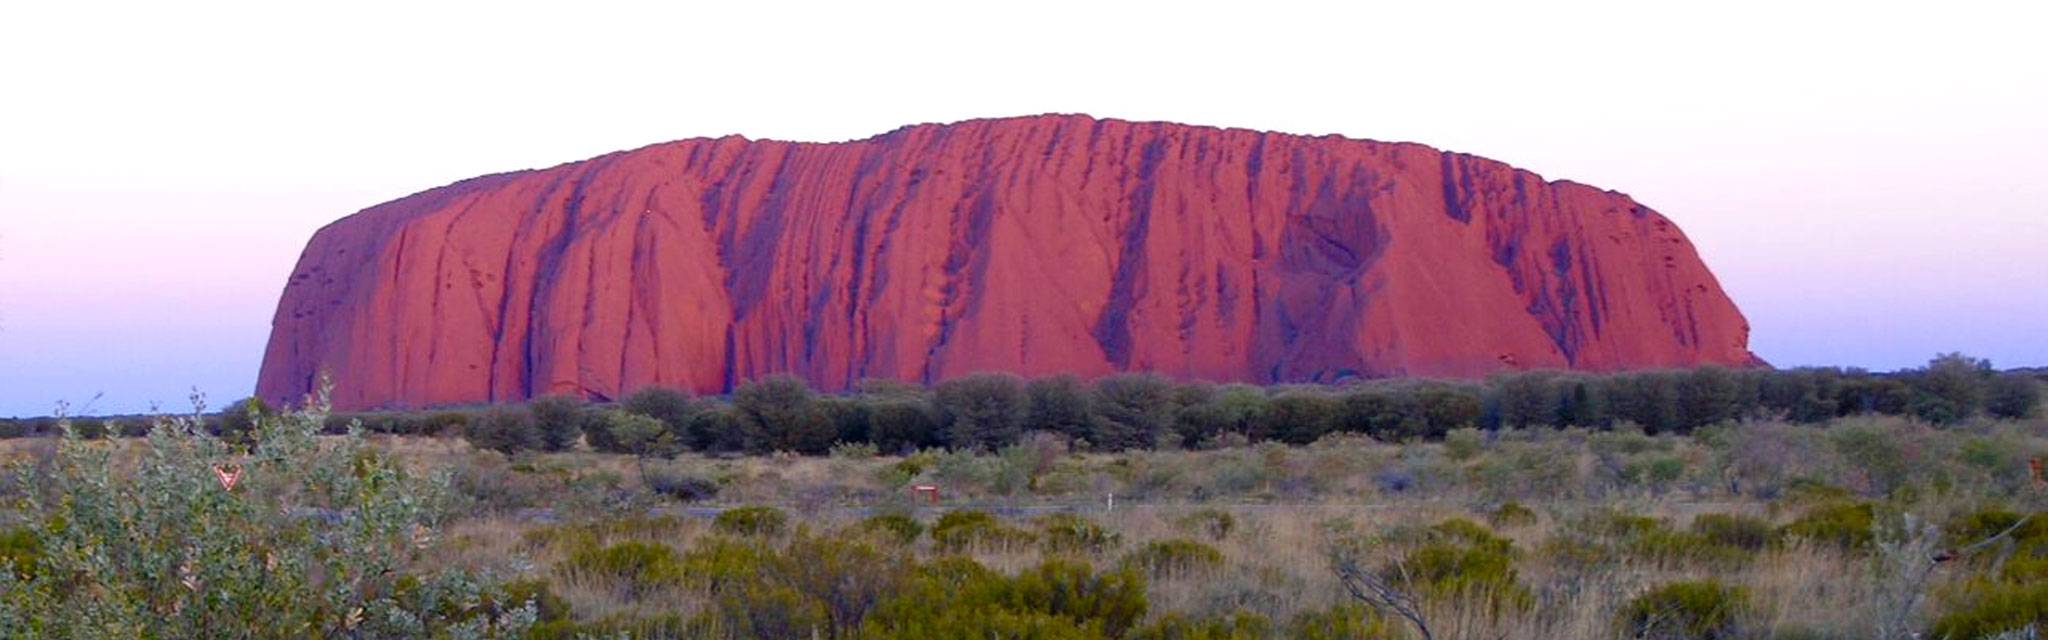 Uluru at Sunset on the Central Australia Red Centre Tour